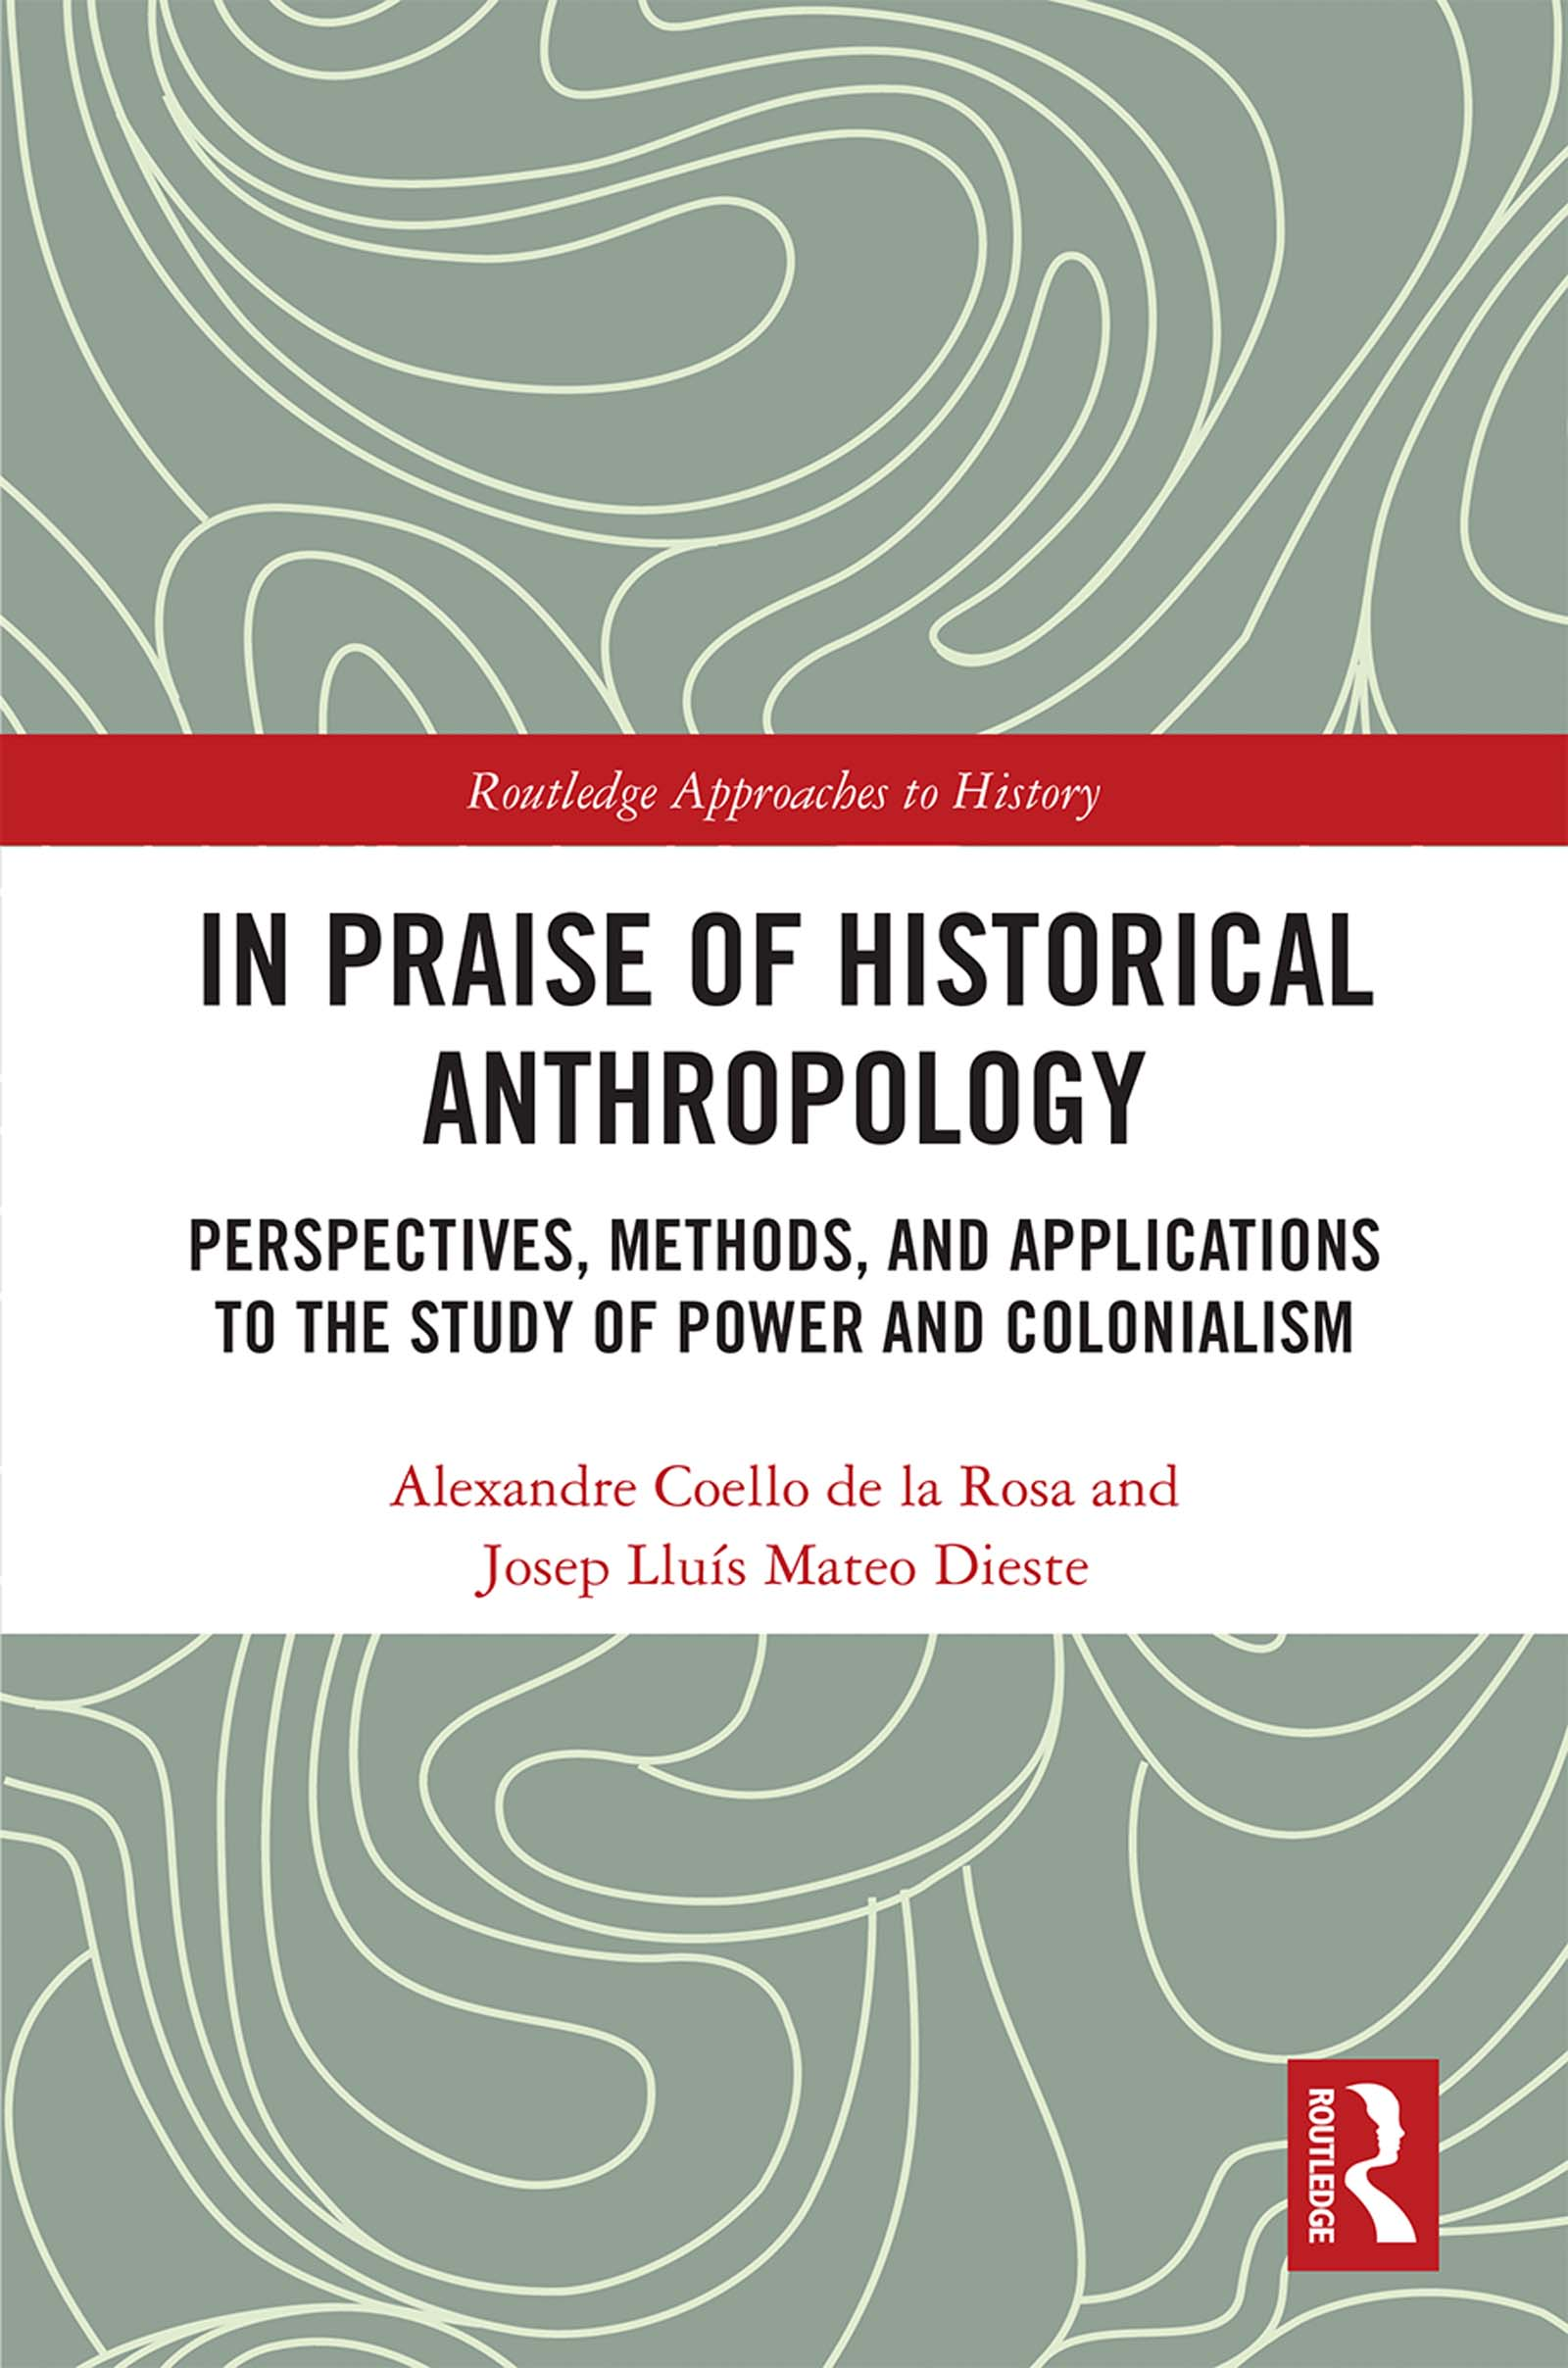 In Praise of Historical Anthropology: Perspectives, Methods, and Applications to the Study of Power and Colonialism book cover